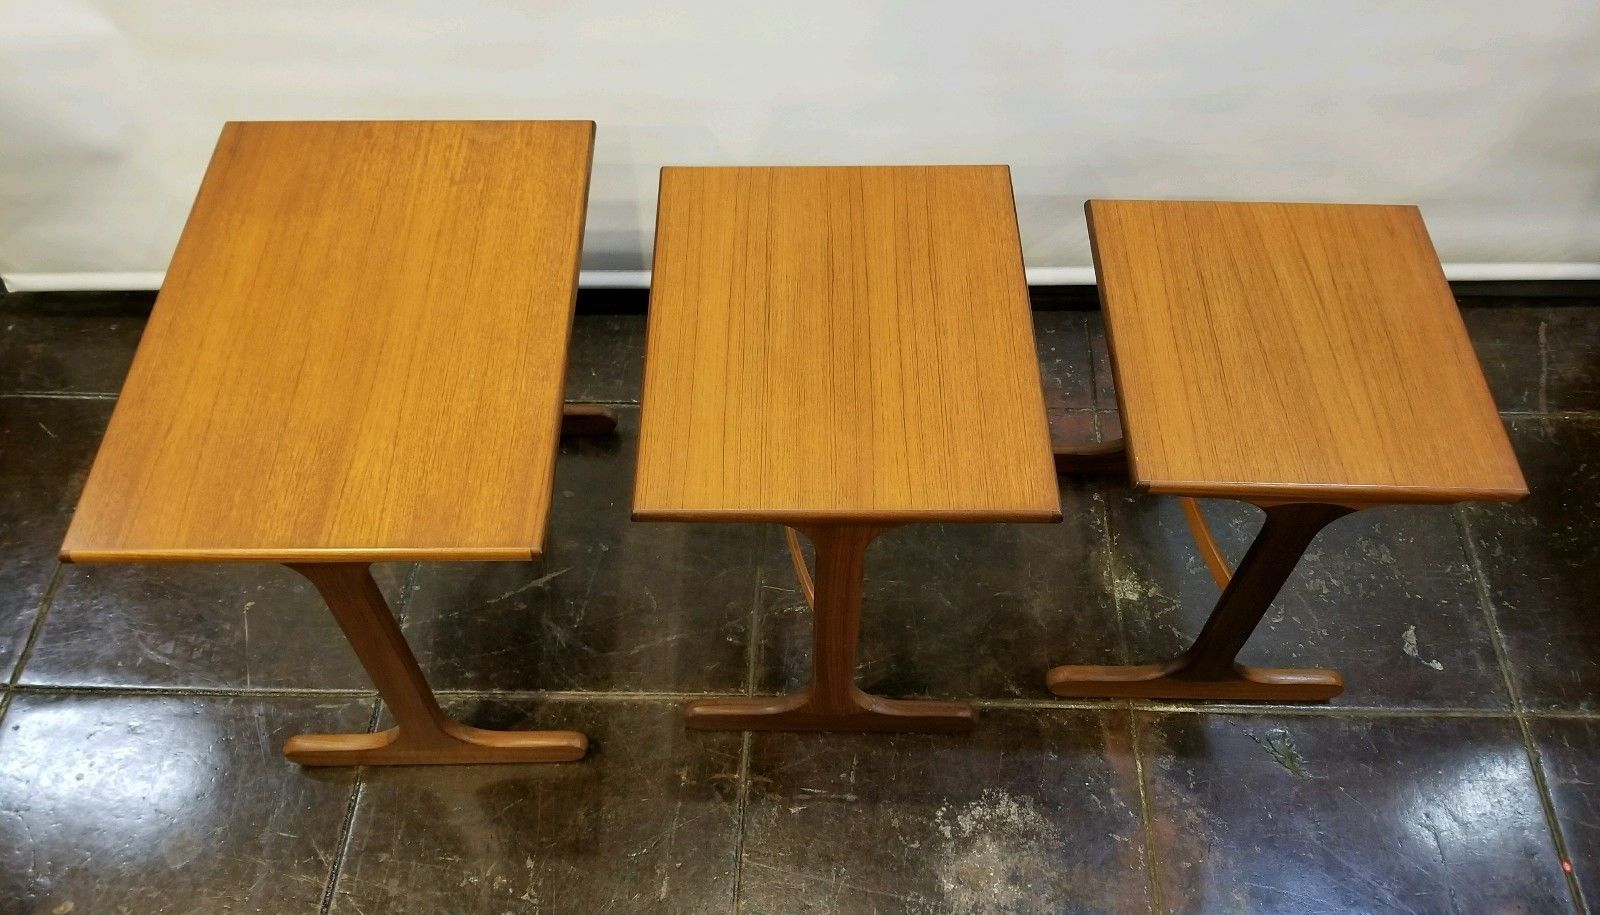 Details About Danish Mid Century Modern Teak Nest Tables By G Plan E Gomme England Uk Mcm Midcentury Modern Teak Mid Century